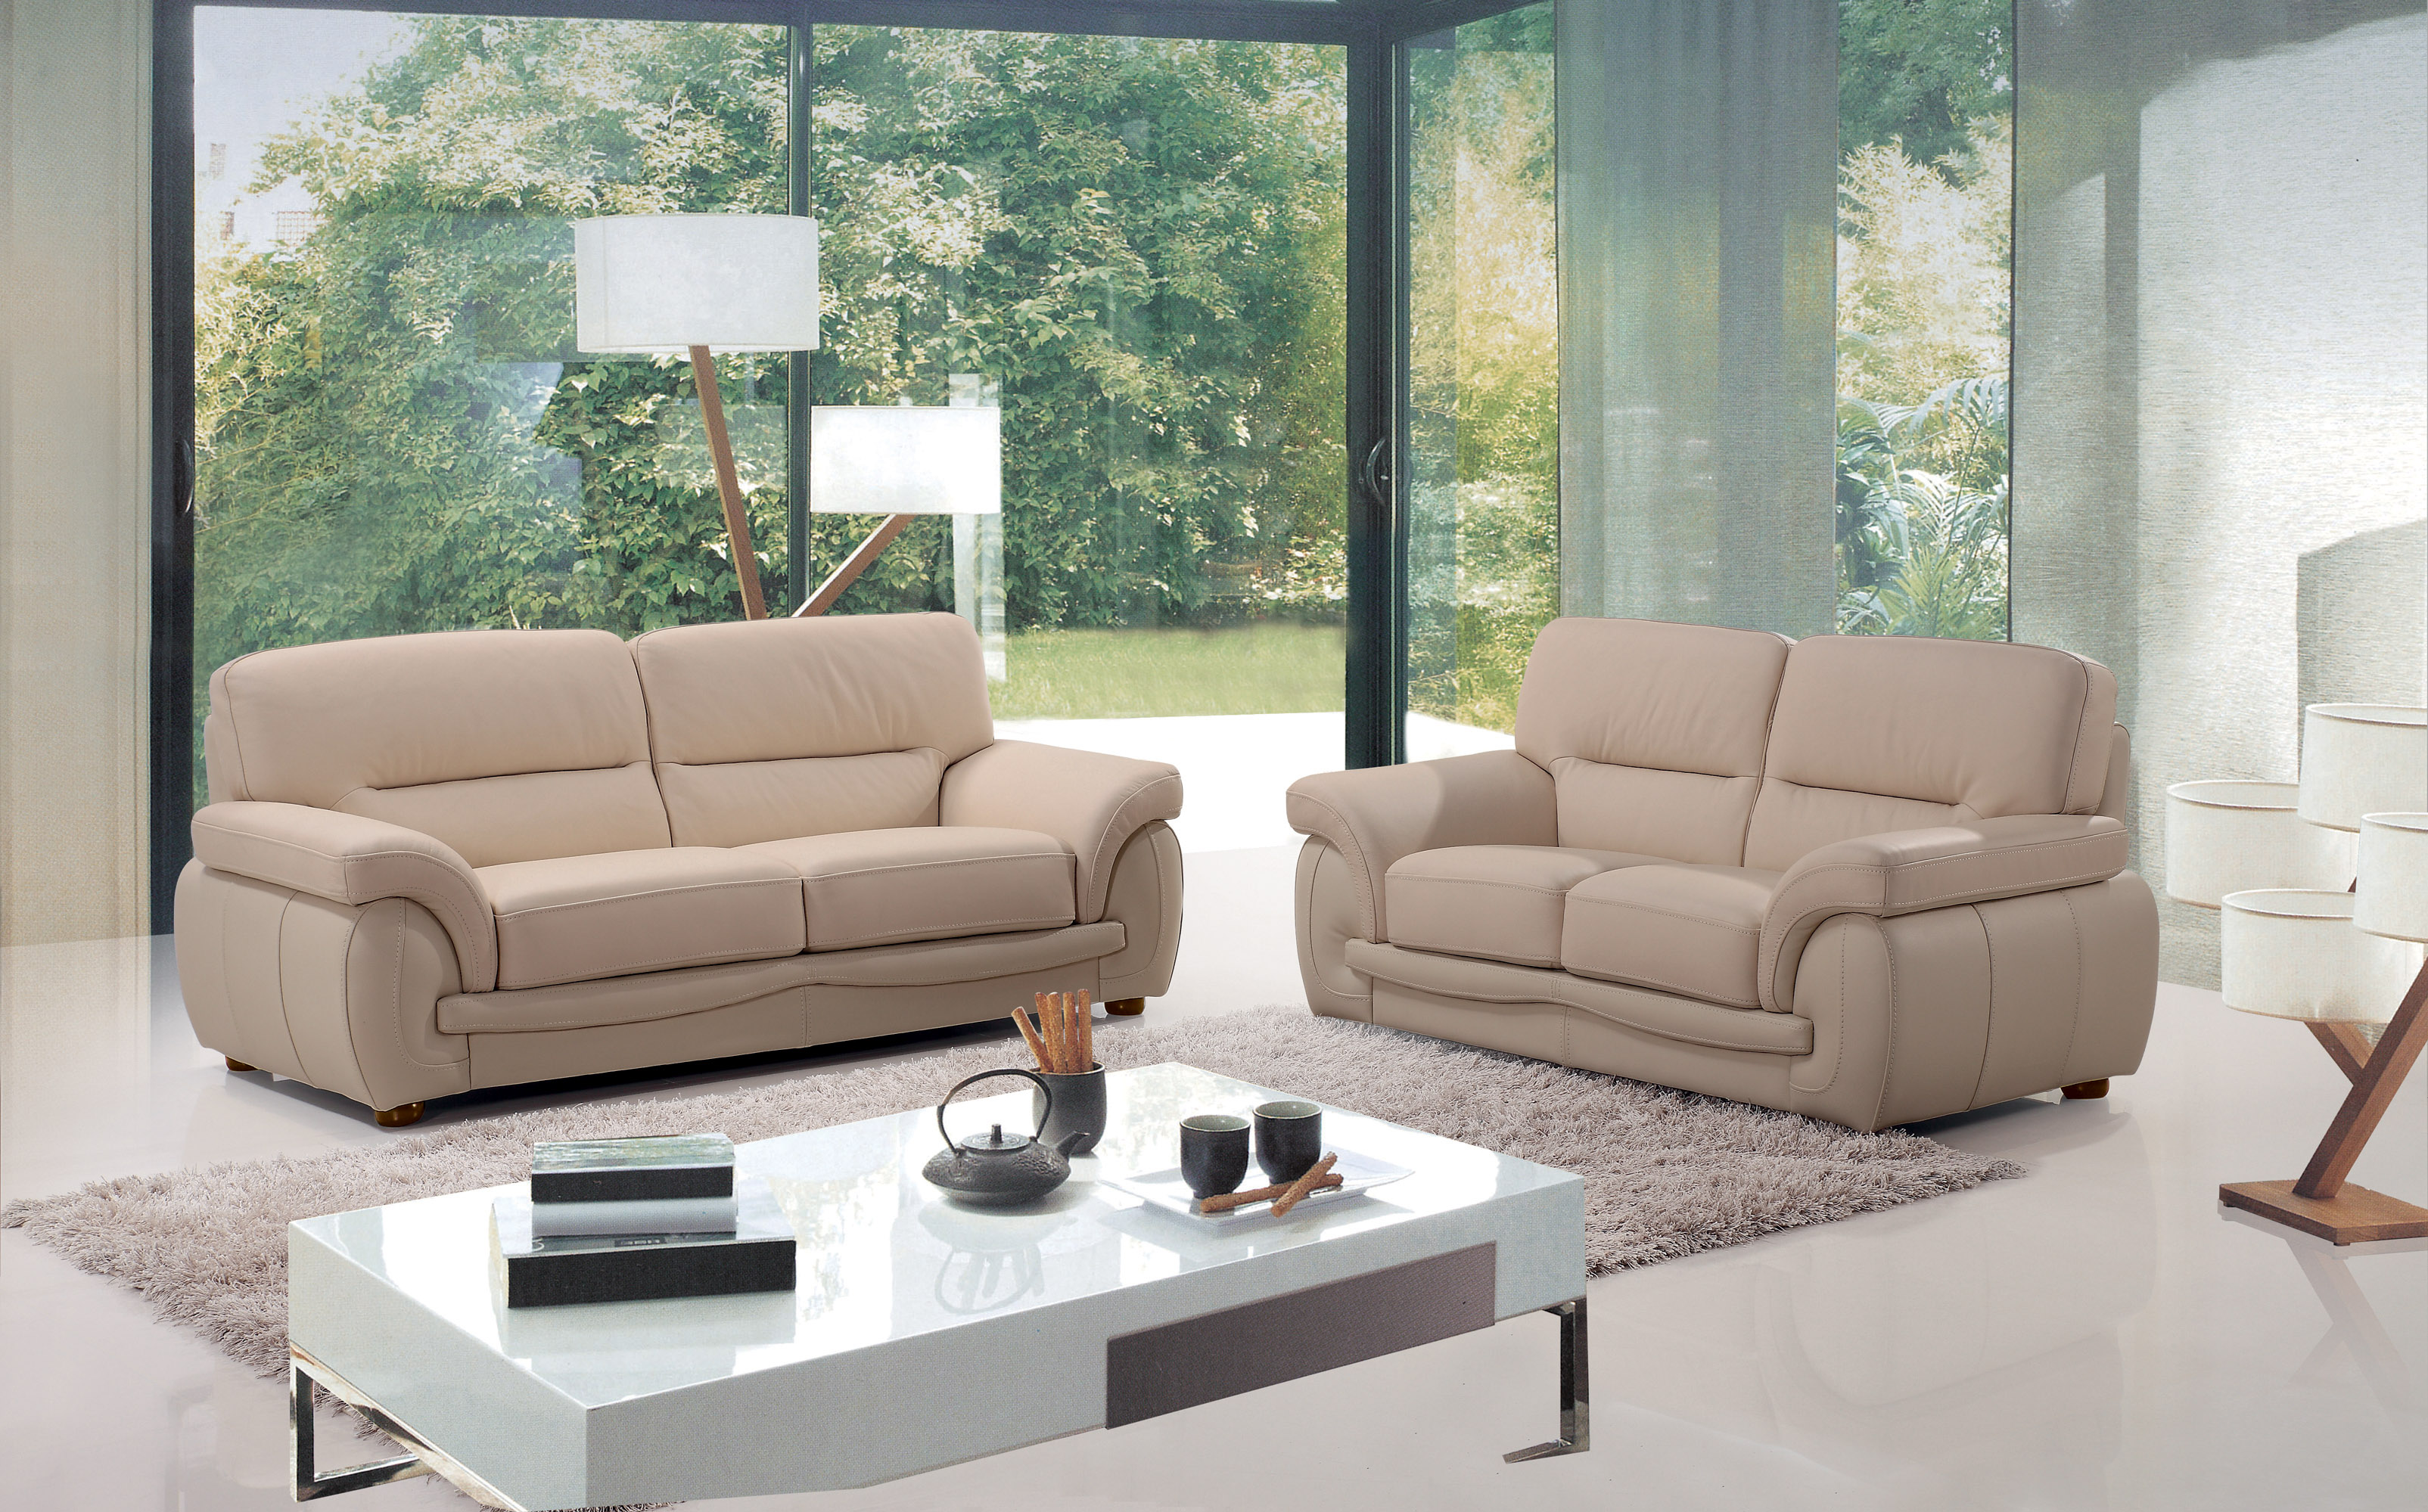 Italian leather furniture stores Leather Italia Genuine And Italian Leather Modern Designer Sofas Avetex Furniture Top Grain Italian Leather Sofa Set Anaheim California Beverlyhills